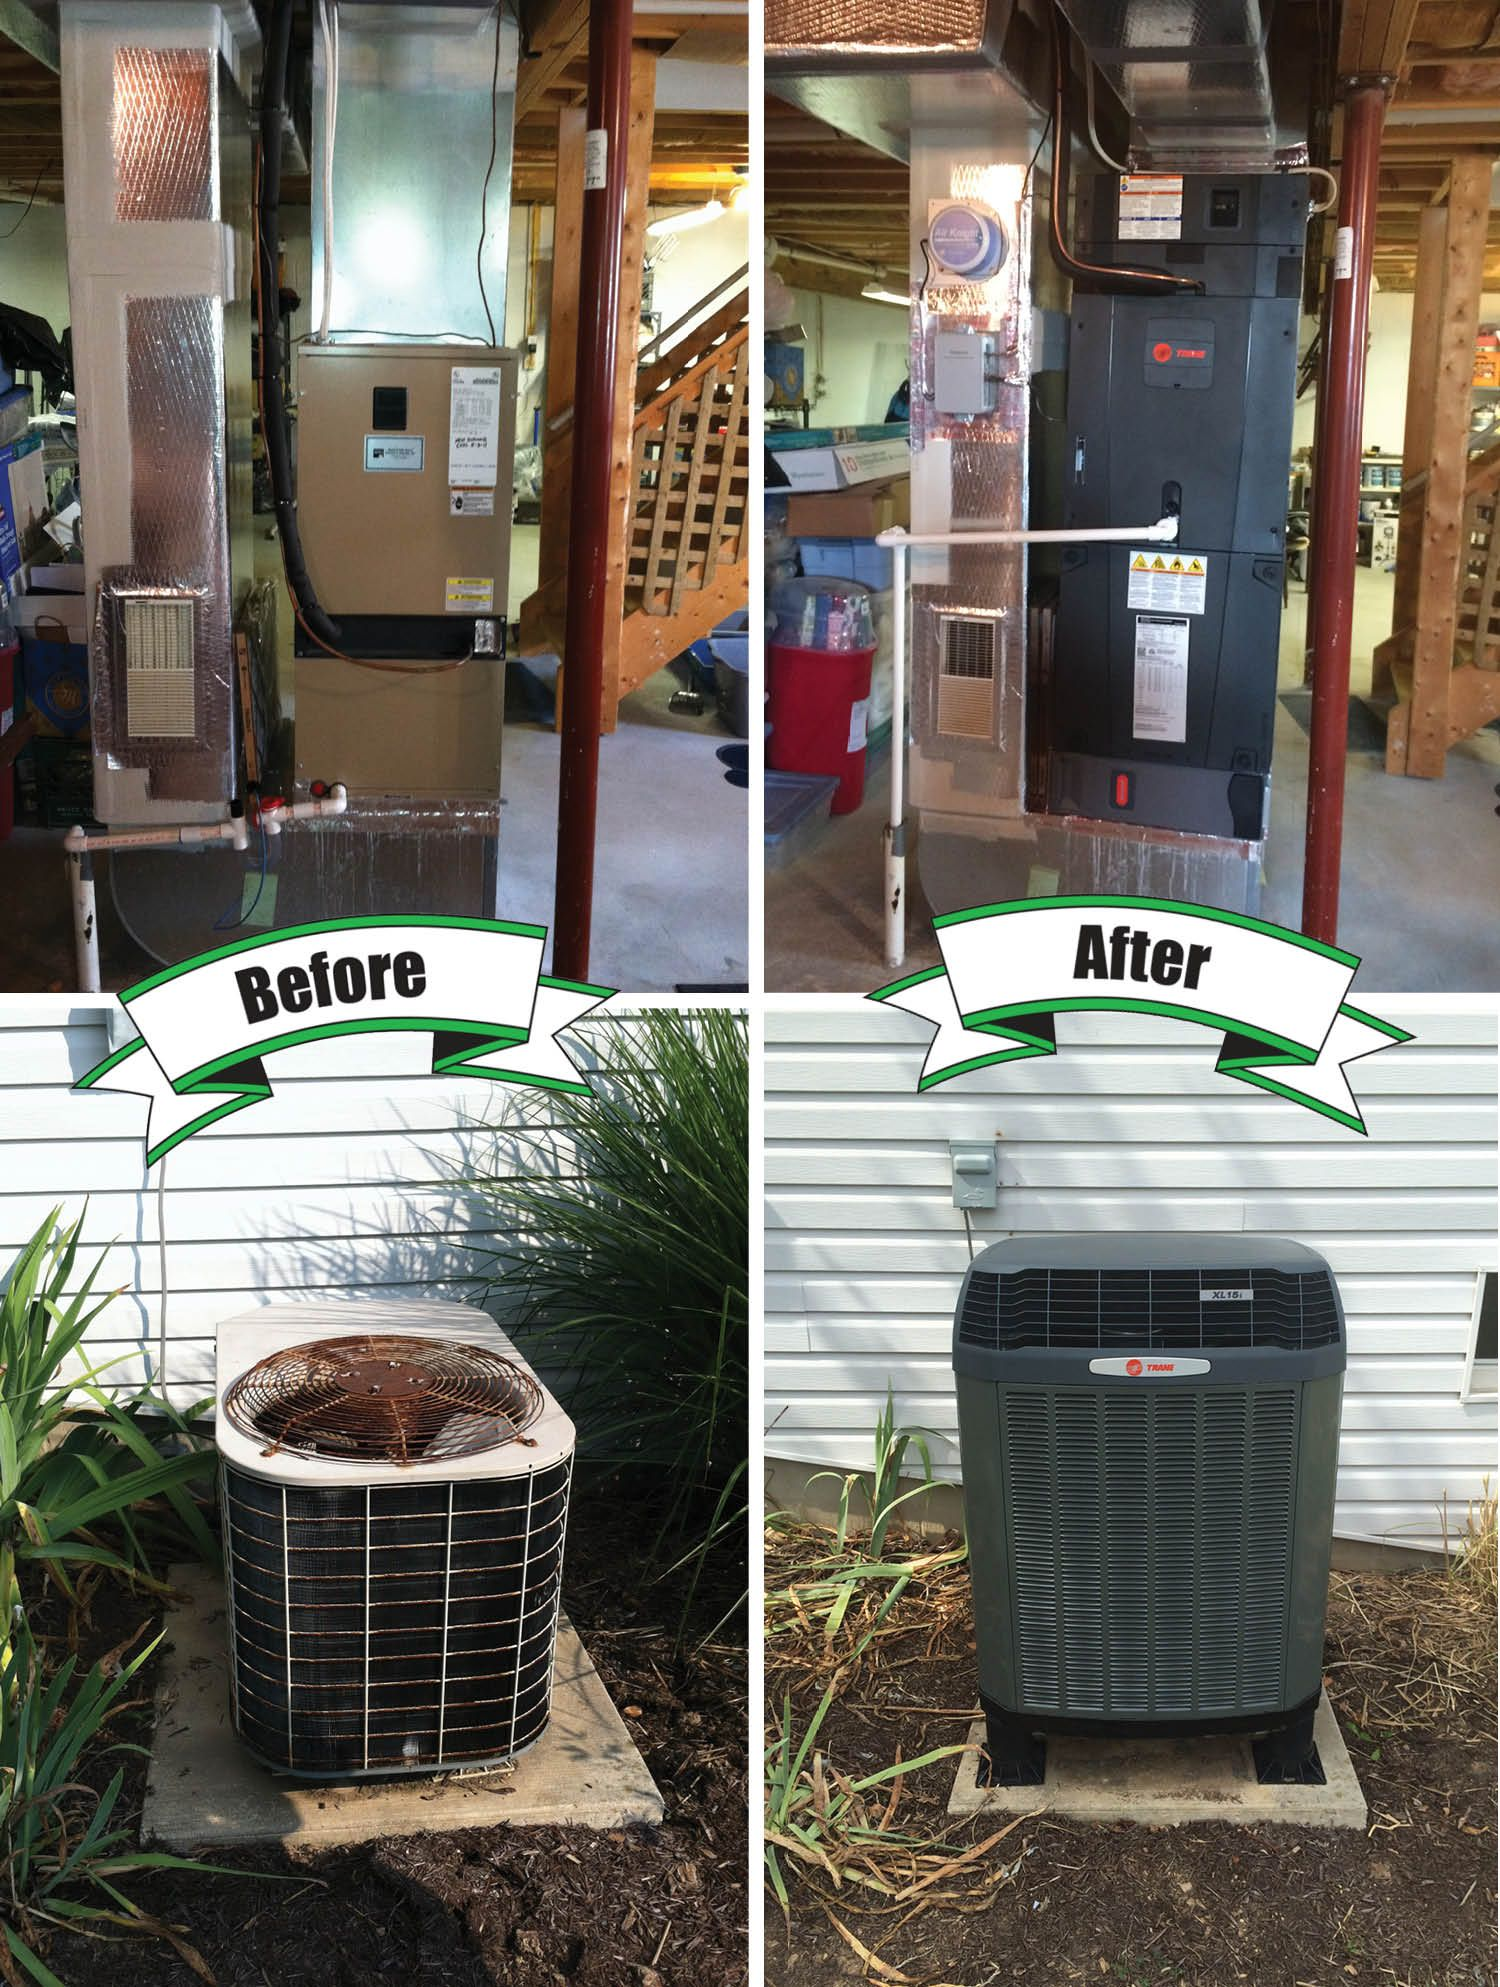 Holtzopleheatingandairconditioning Trane Beforeandafter We Can Transform Your Old Hvac System Into A High Hvac Air Conditioning Hvac Maintenance Trane Hvac